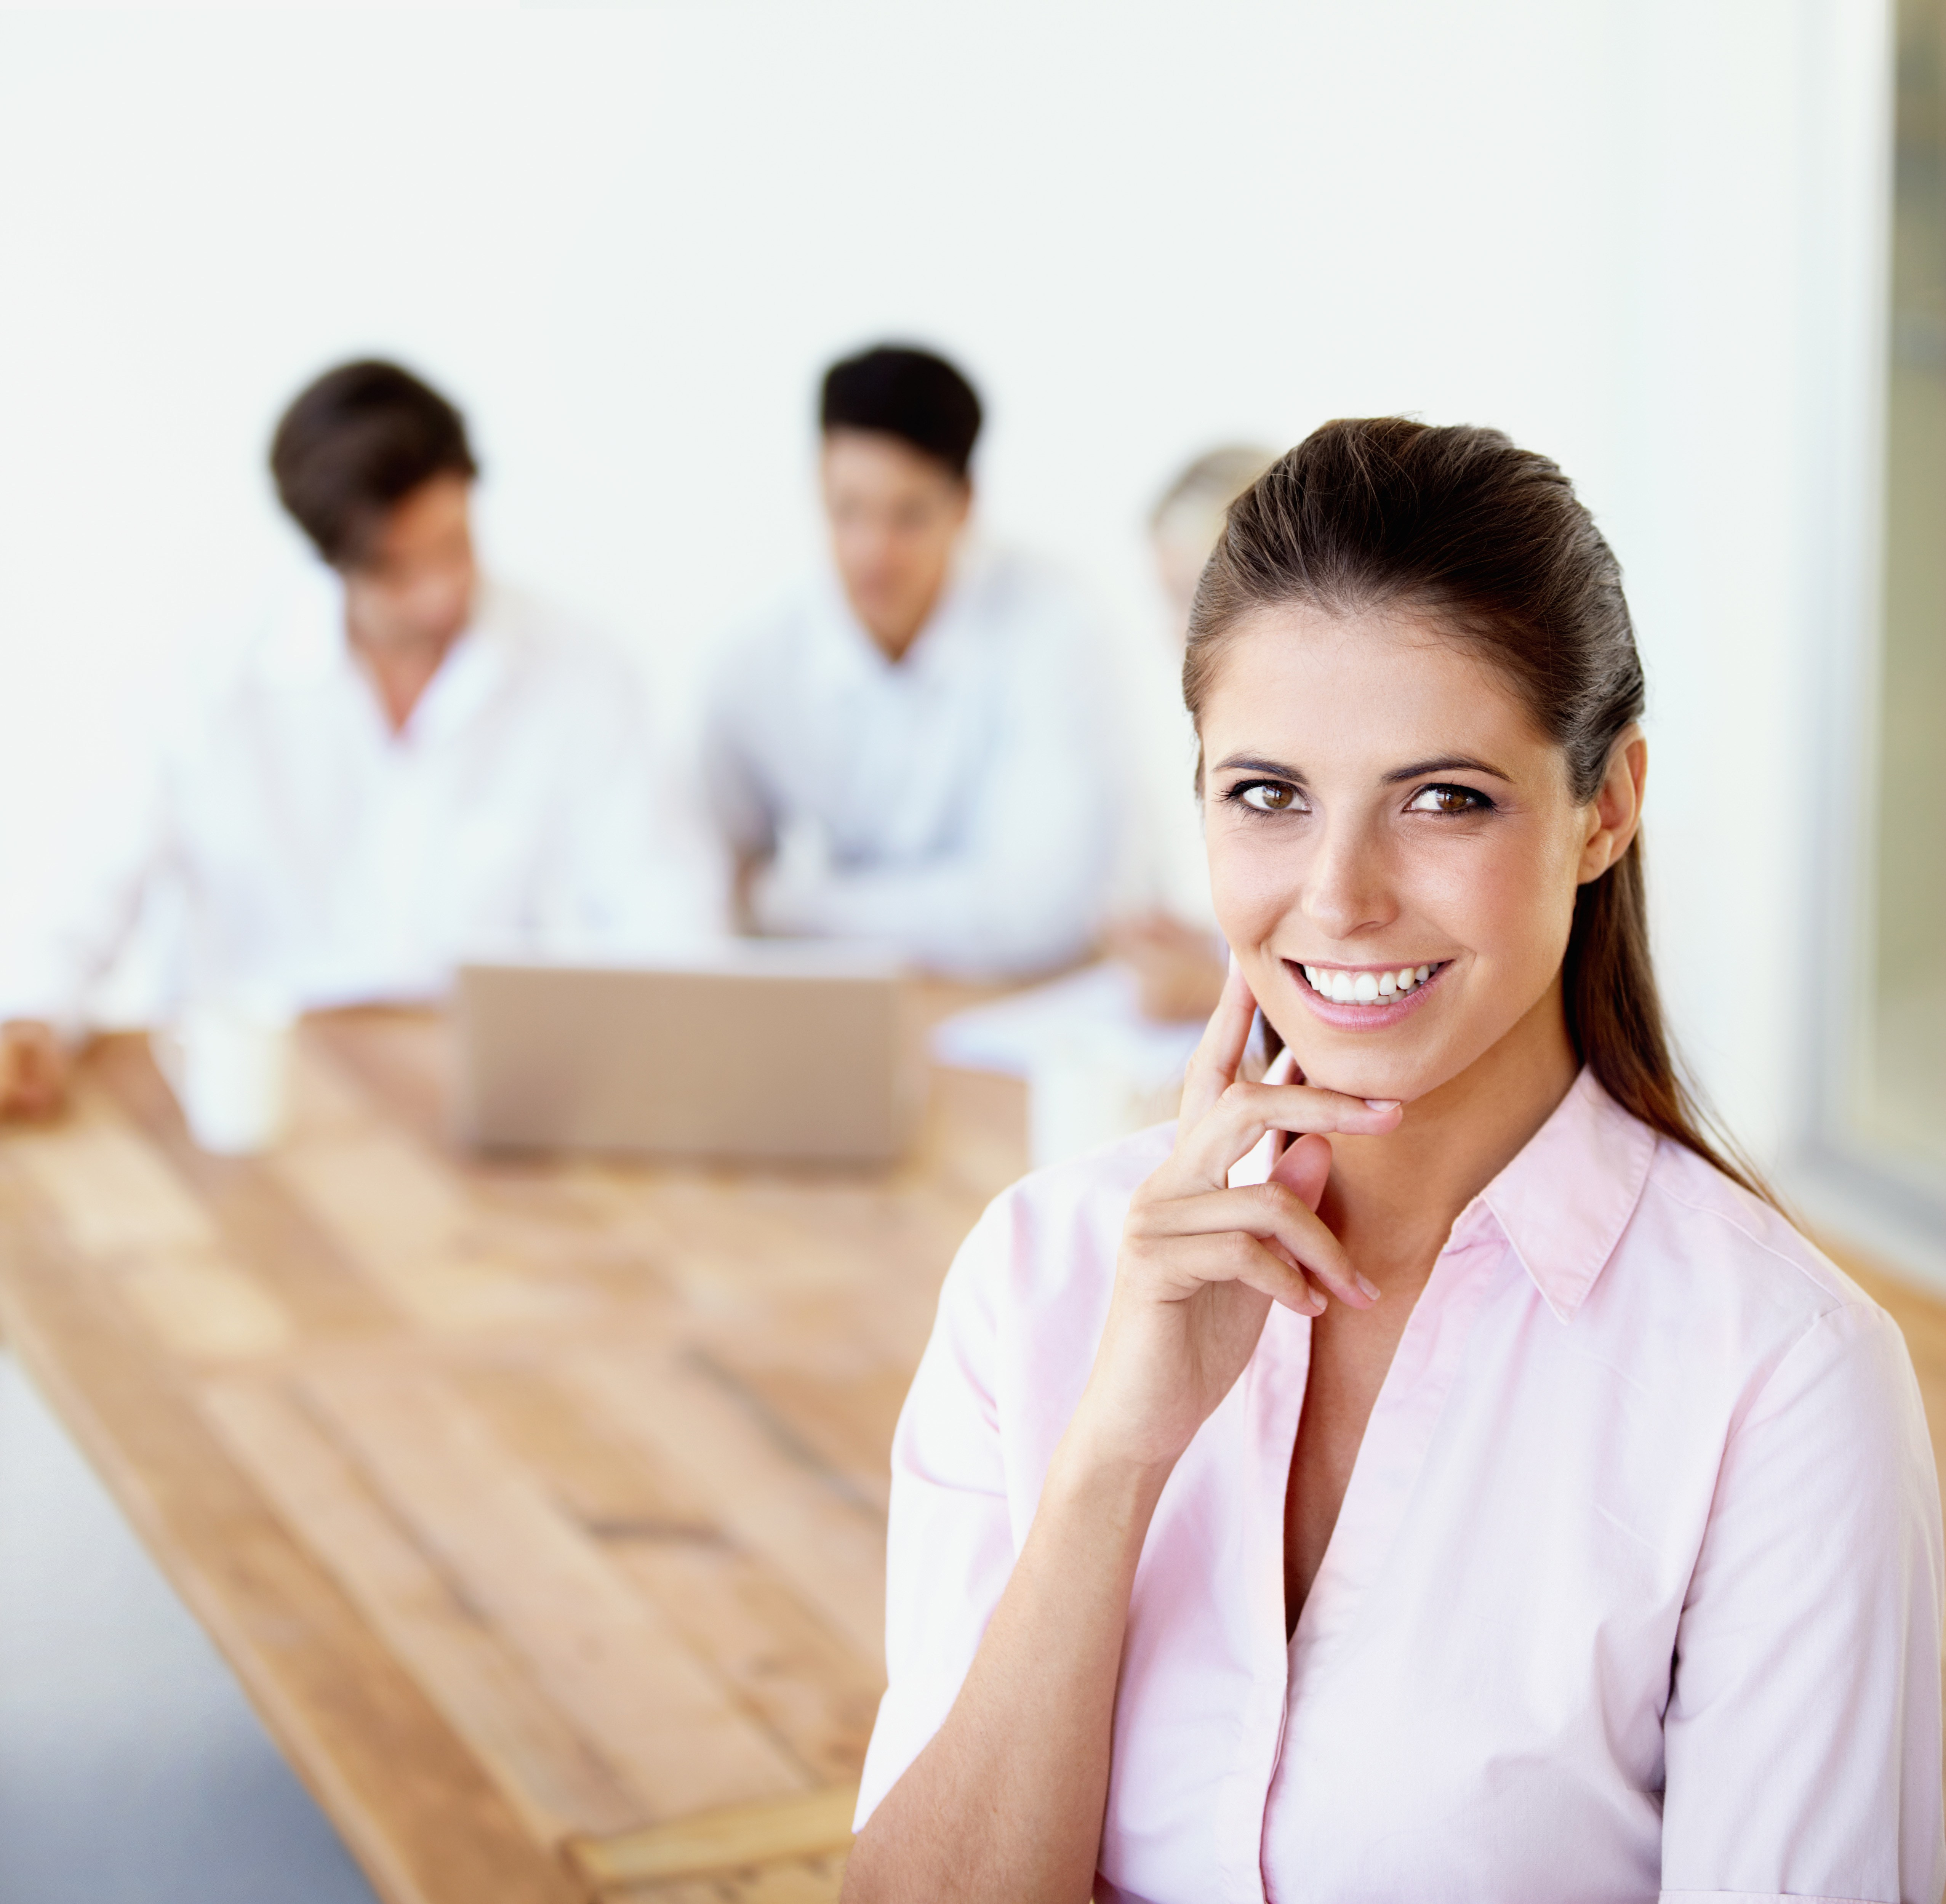 Smiling young businesswoman standing in the office with her team working in the background